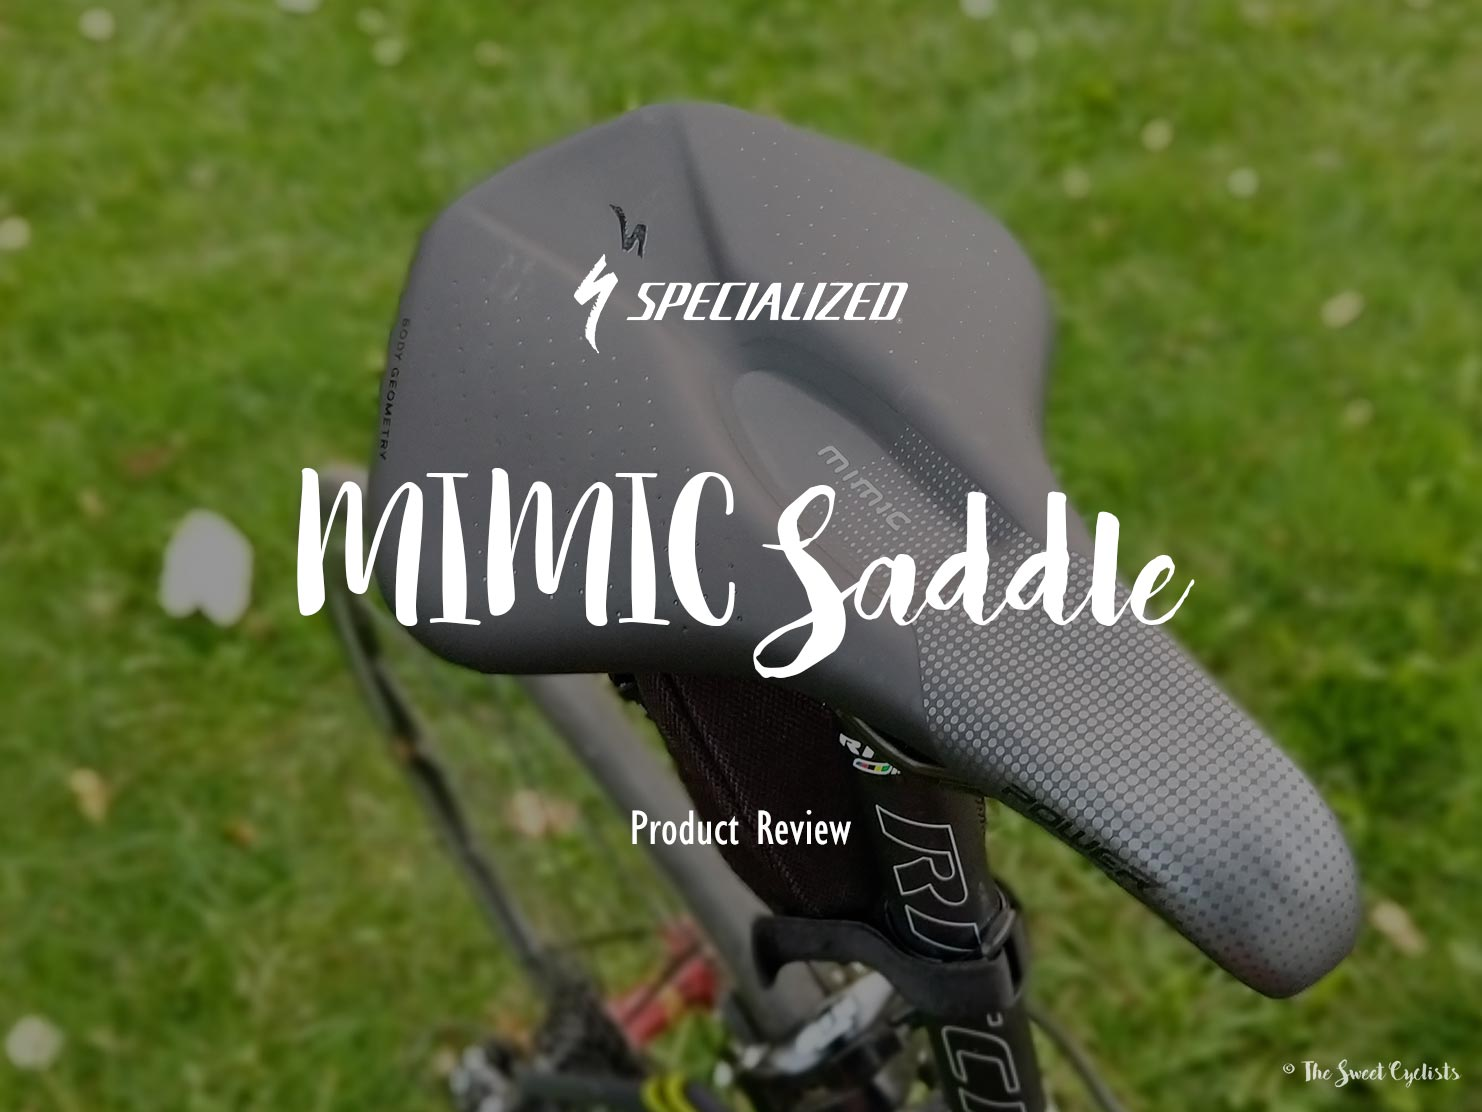 A saddle designed for Women's Body Geometry